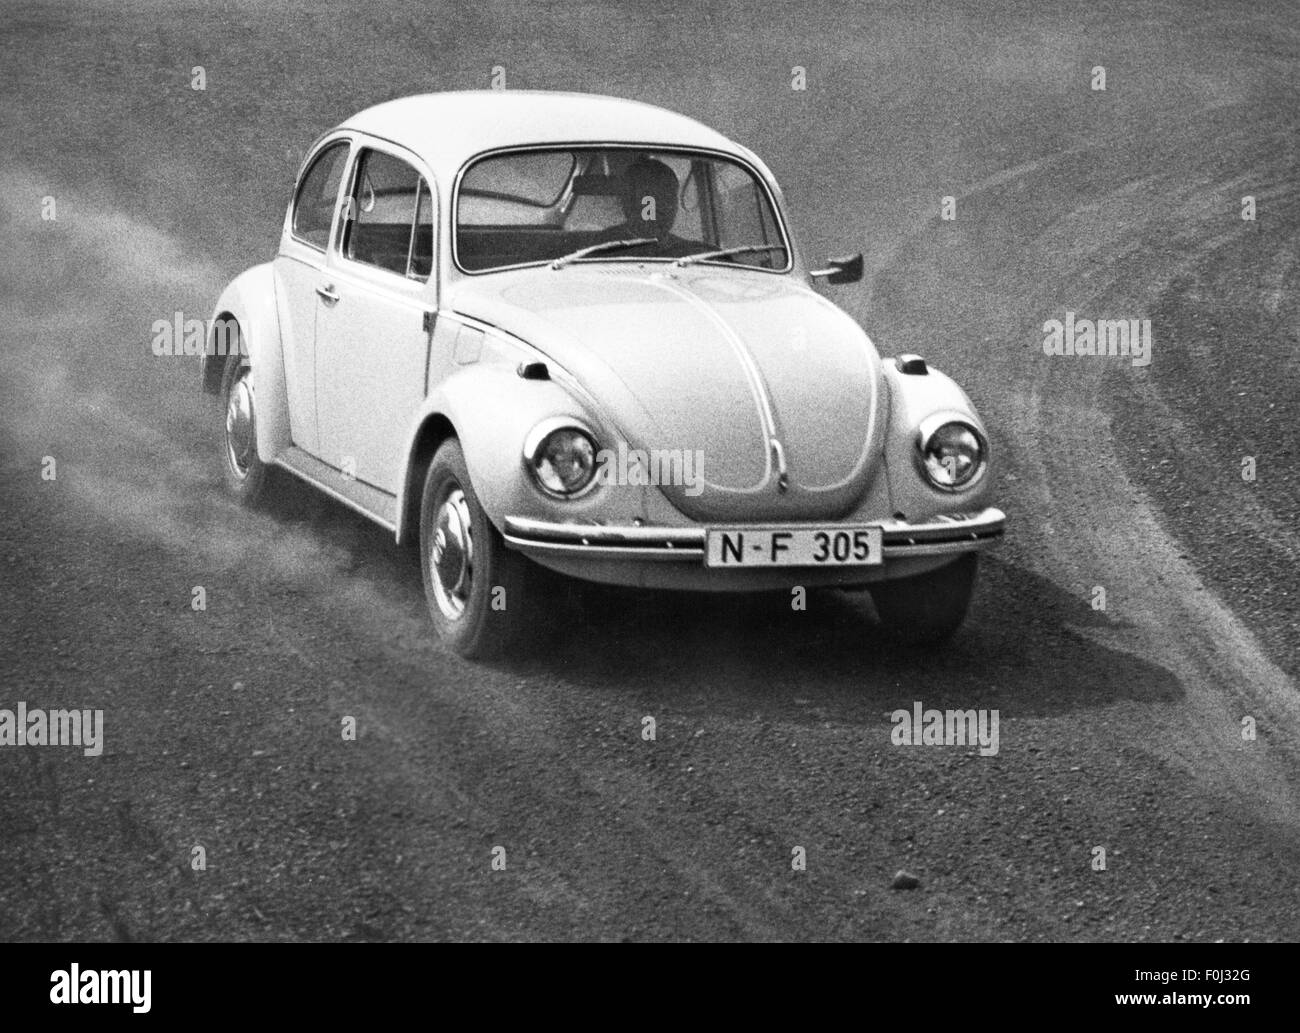 transport / transportation, car, vehicle variants, Volkswagen, VW 1302 S beetle, 1970, Additional-Rights-Clearences - Stock Image